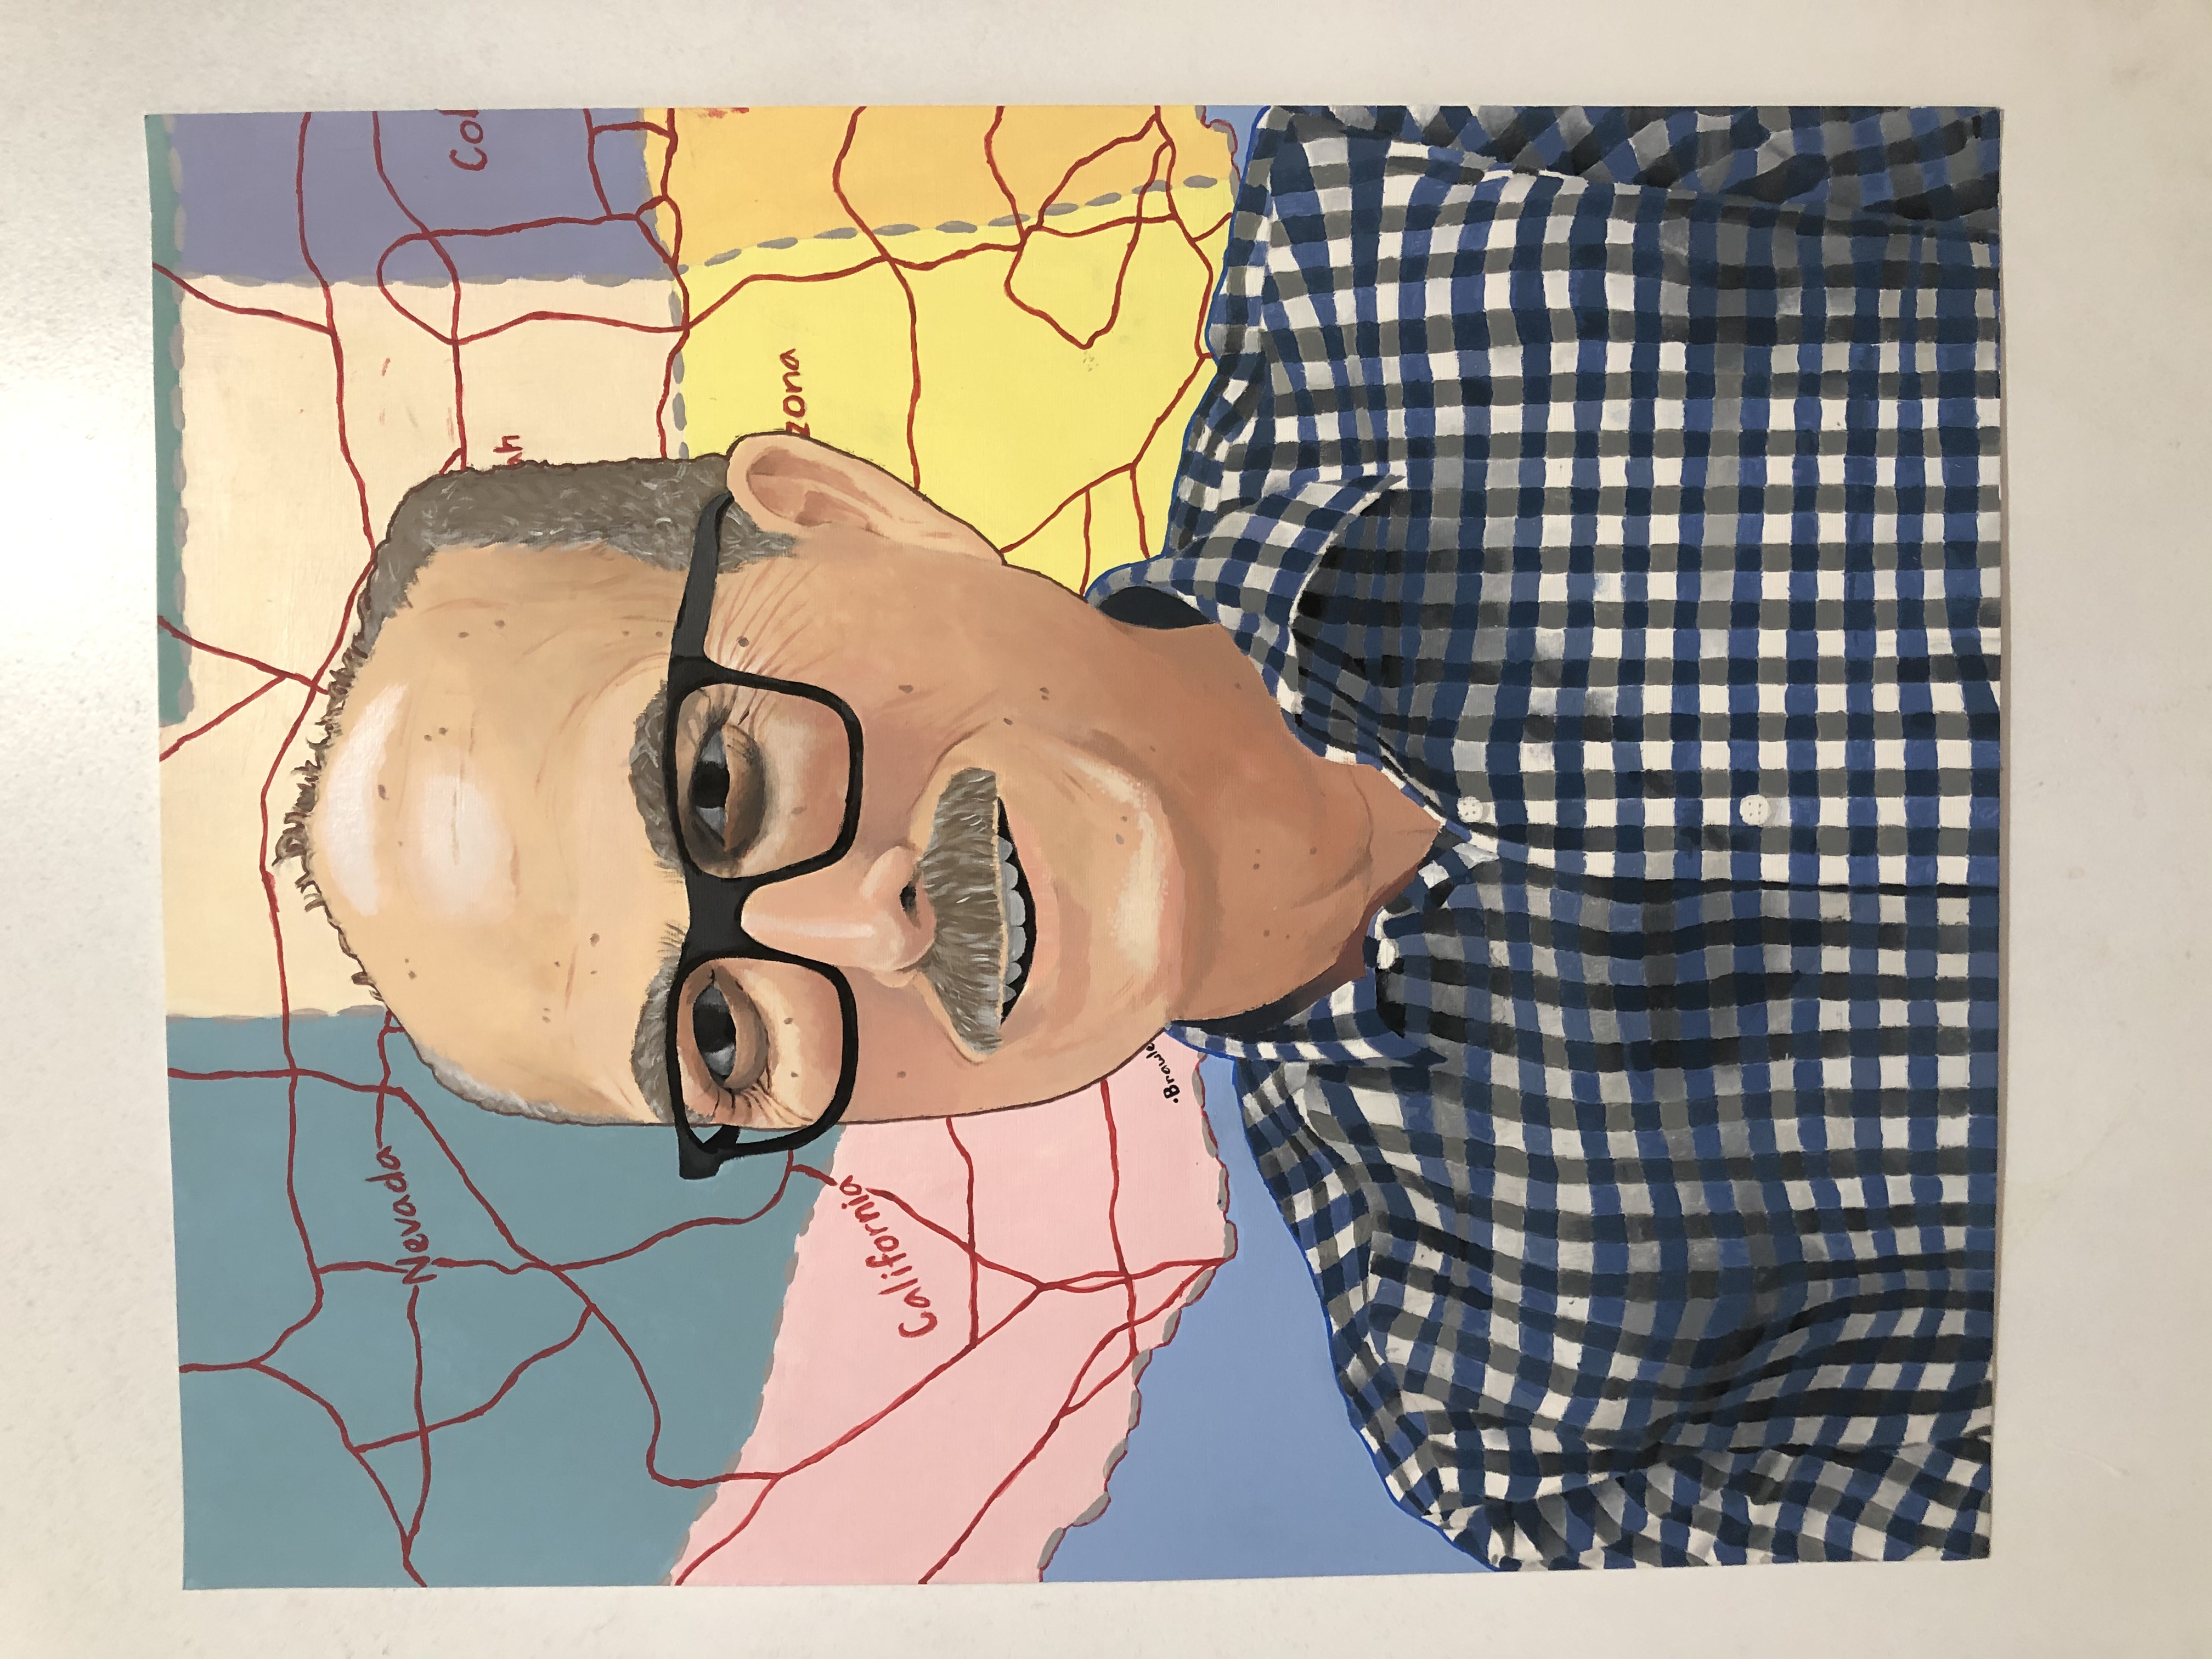 A painting of a U.S. History teacher, wearing glasses and a blue plaid shirt. In the background is part of a colorful map of the United States.